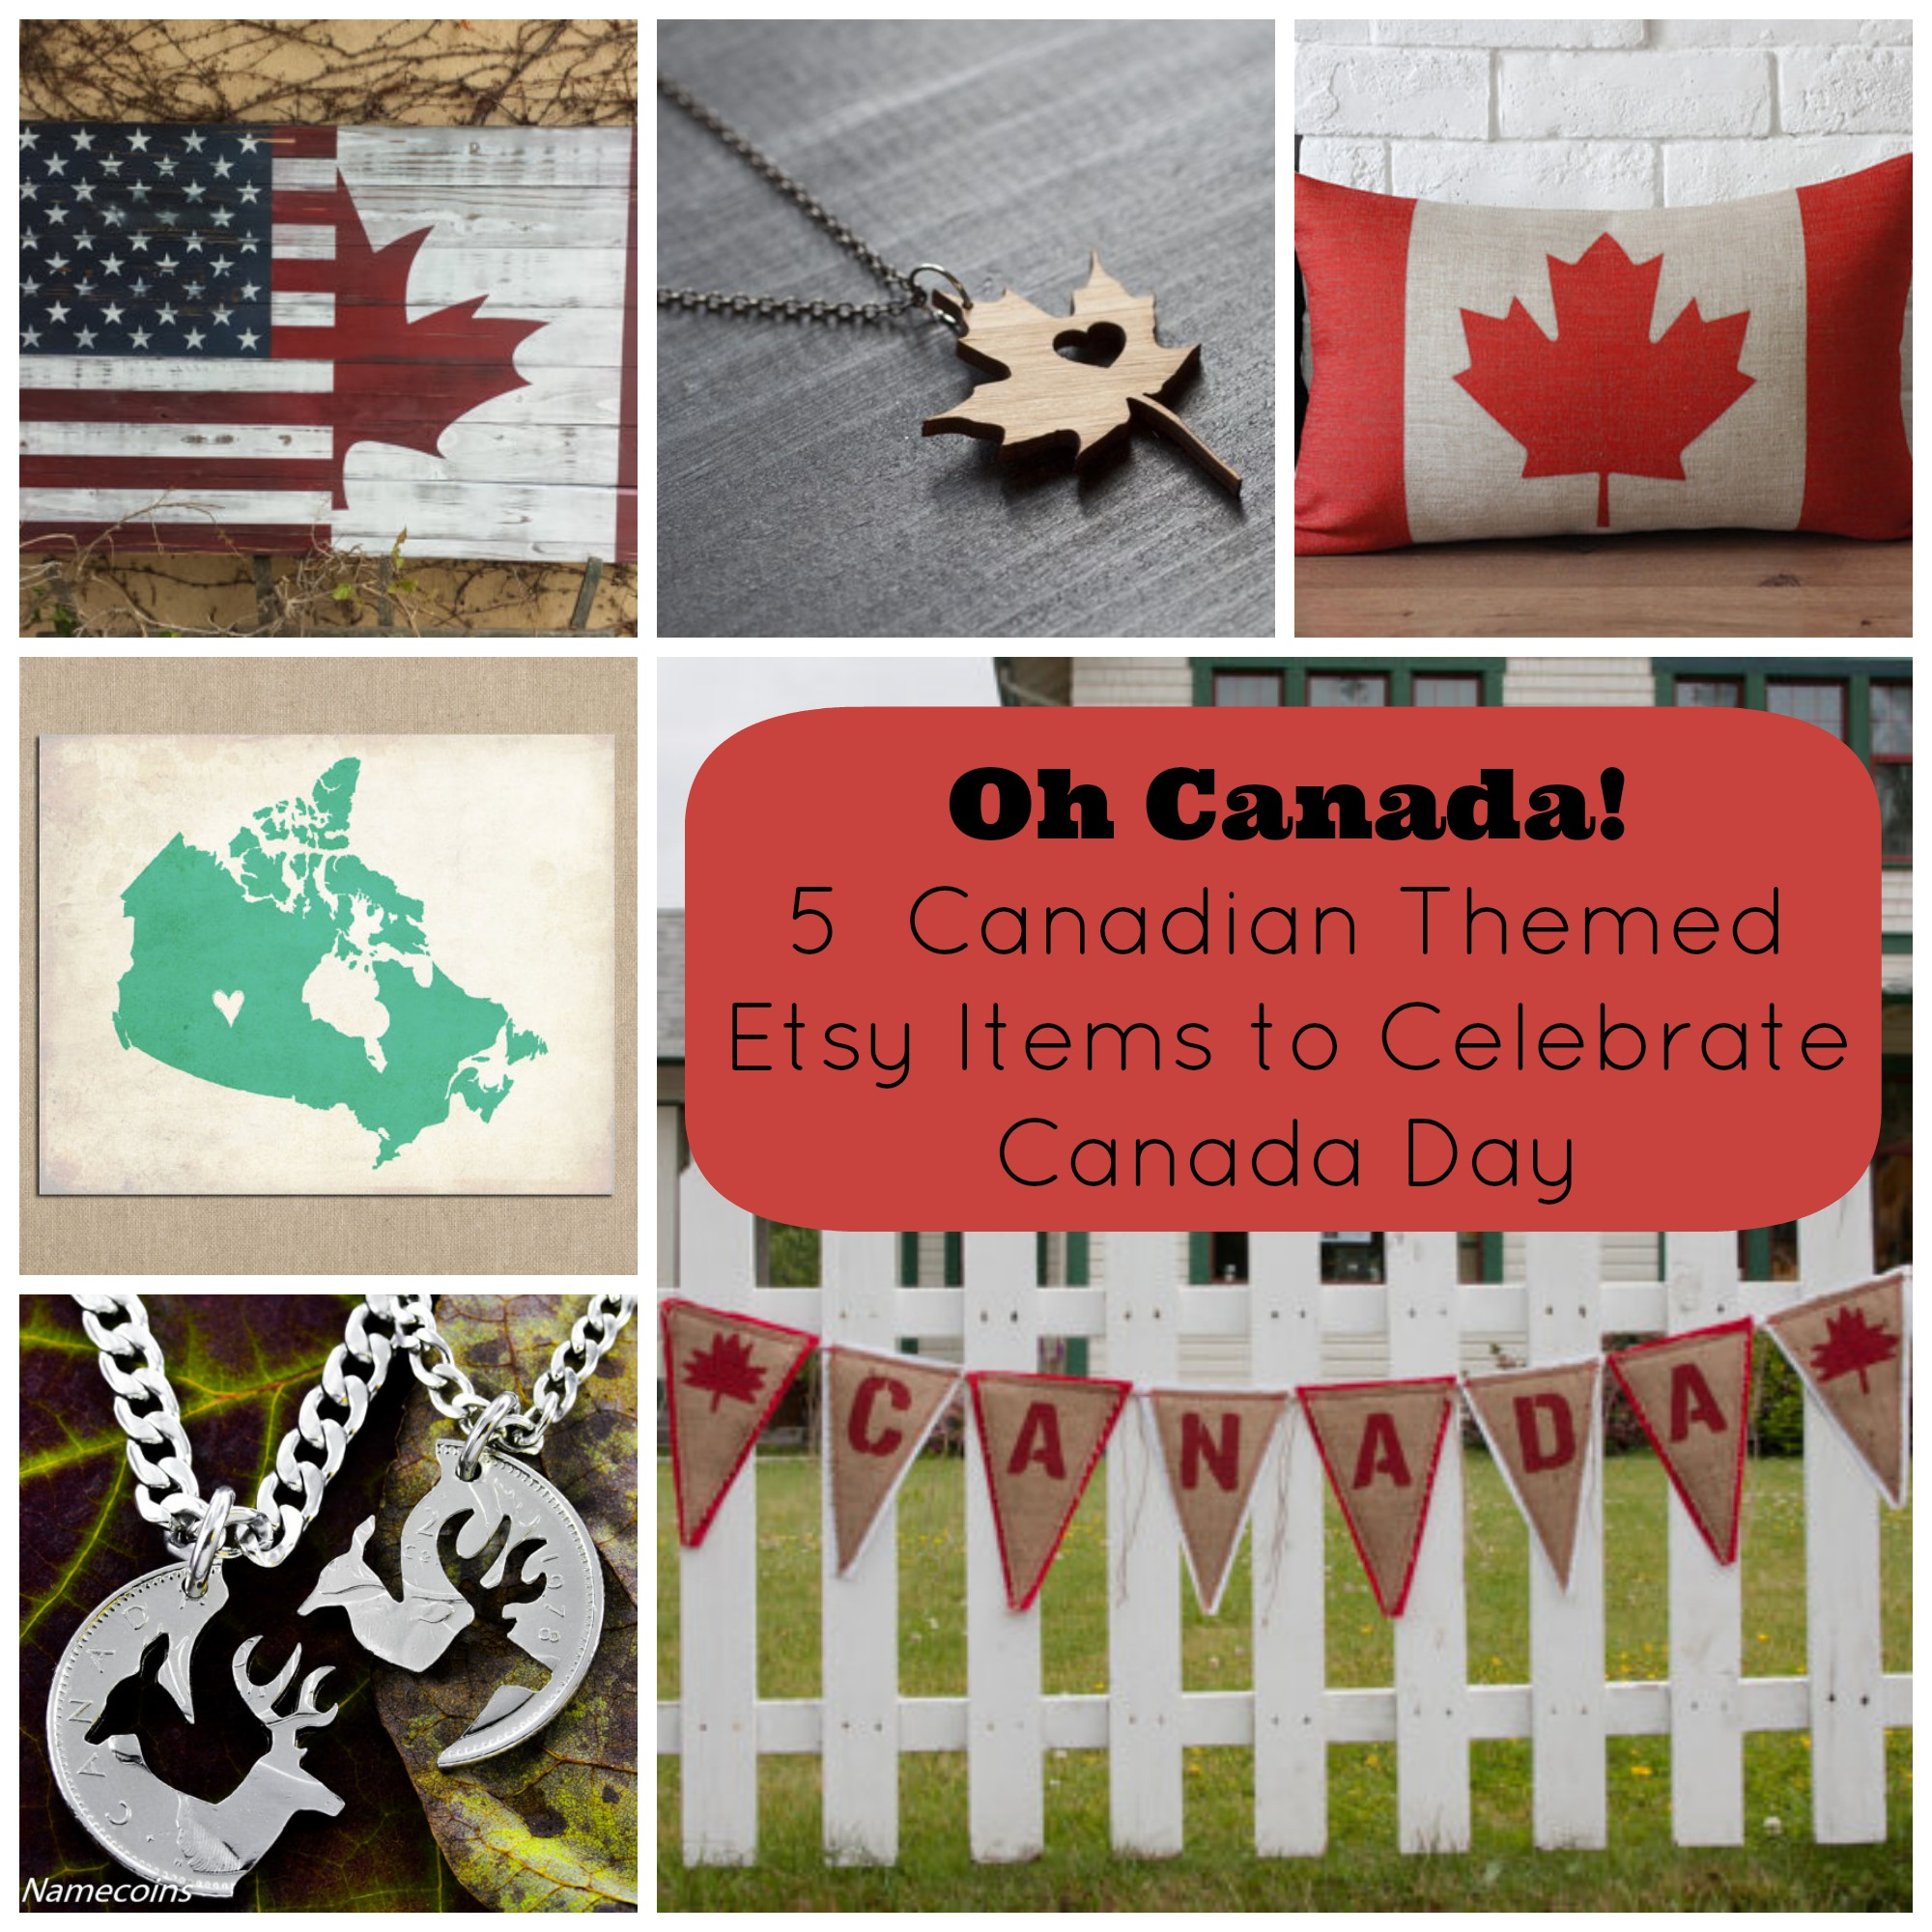 Oh Canada 5 Canadian Themed Etsy Items to Celebrate Canada Day.jpg